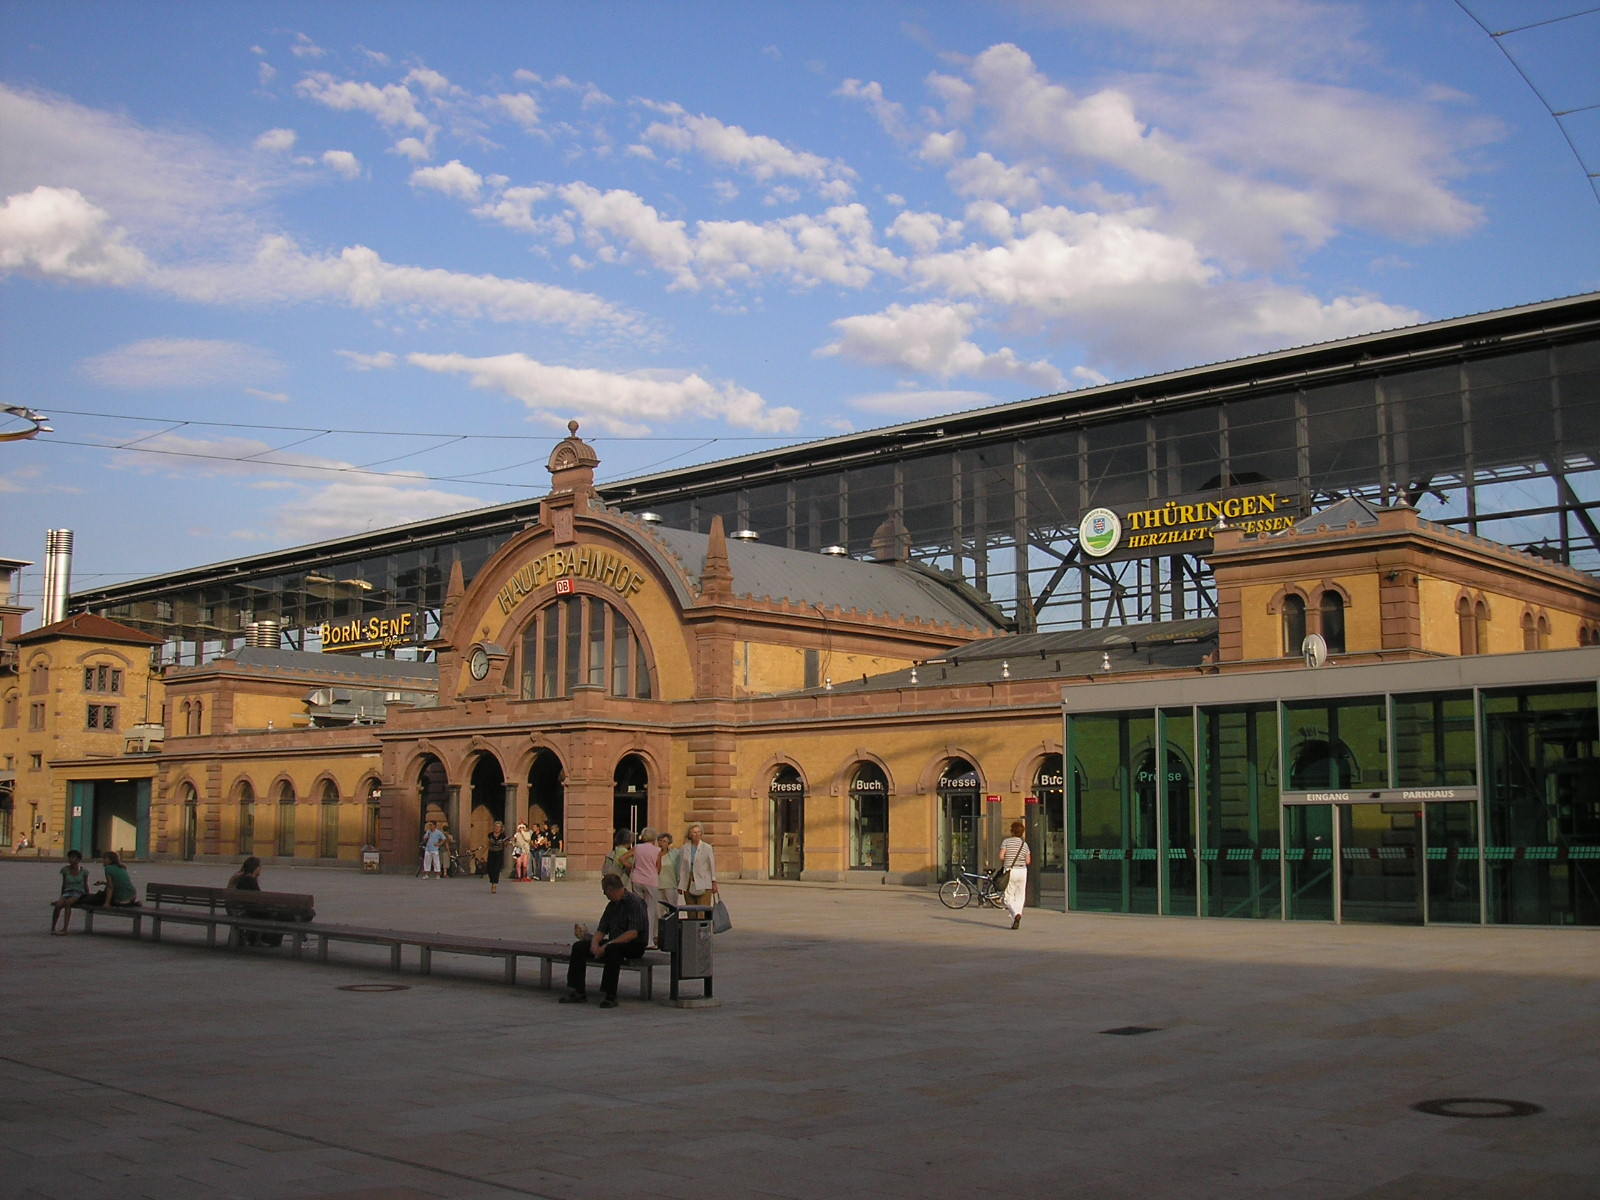 https://upload.wikimedia.org/wikipedia/commons/8/86/Erfurt_Hbf_Front.JPG